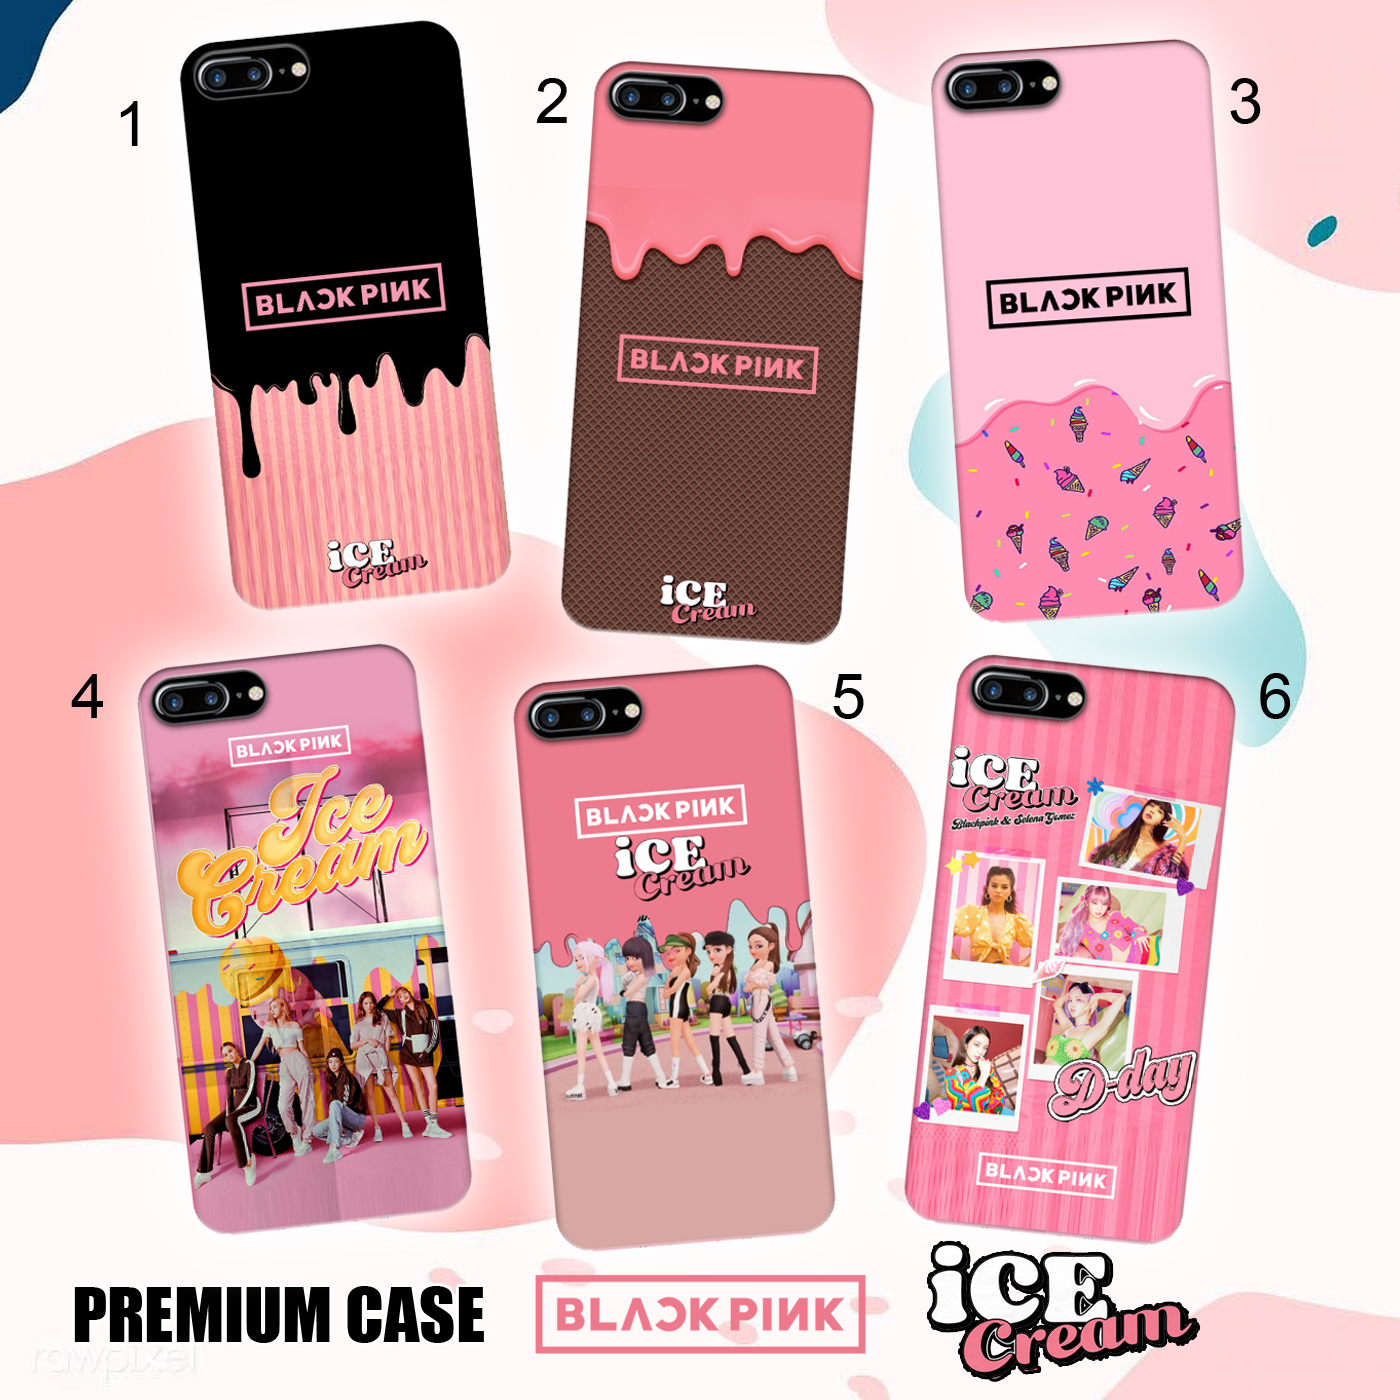 casing blackpink ice cream